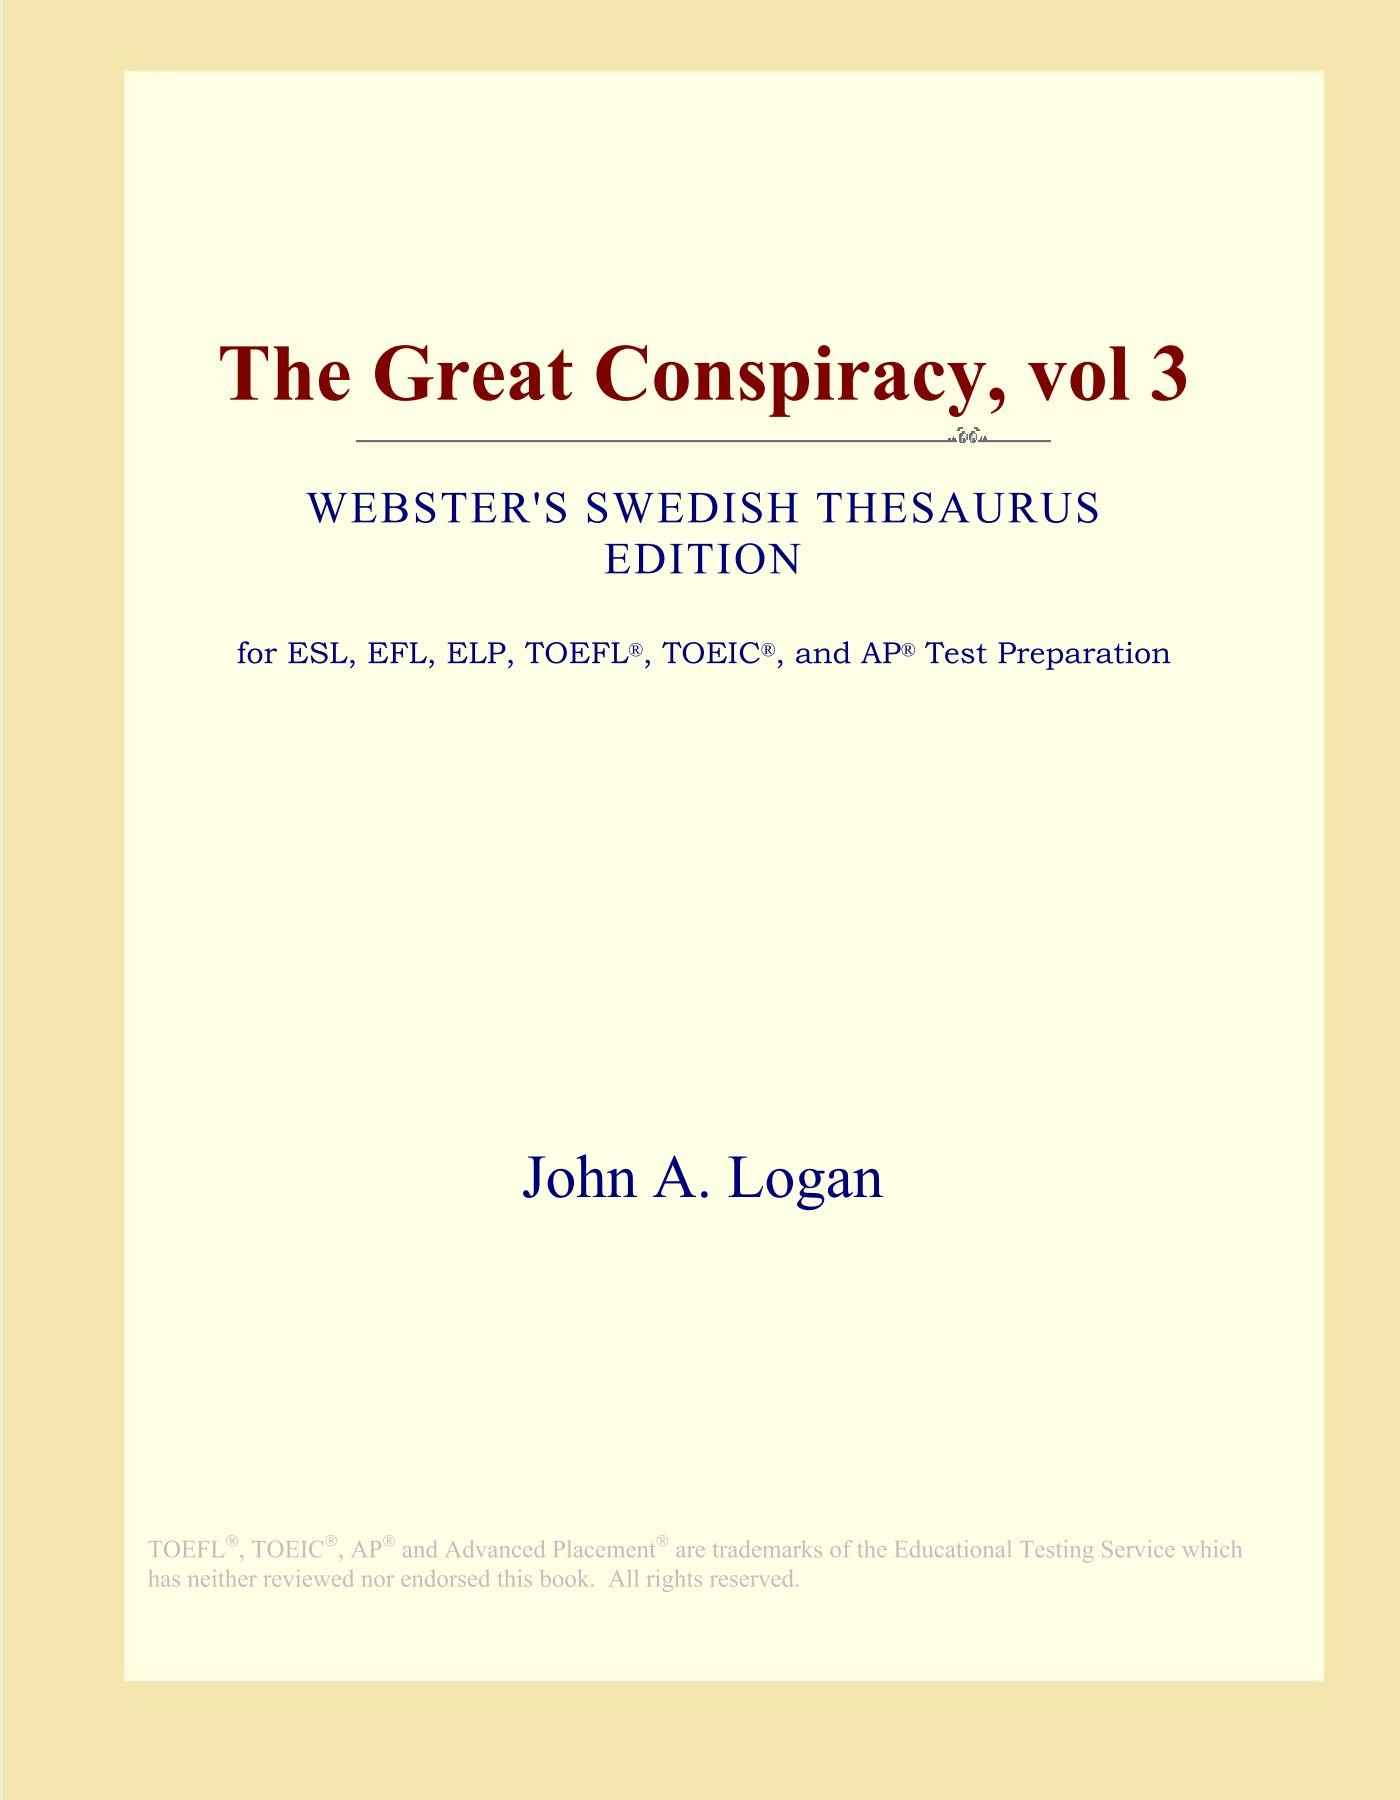 Download The Great Conspiracy, vol 3 (Webster's Swedish Thesaurus Edition) ebook